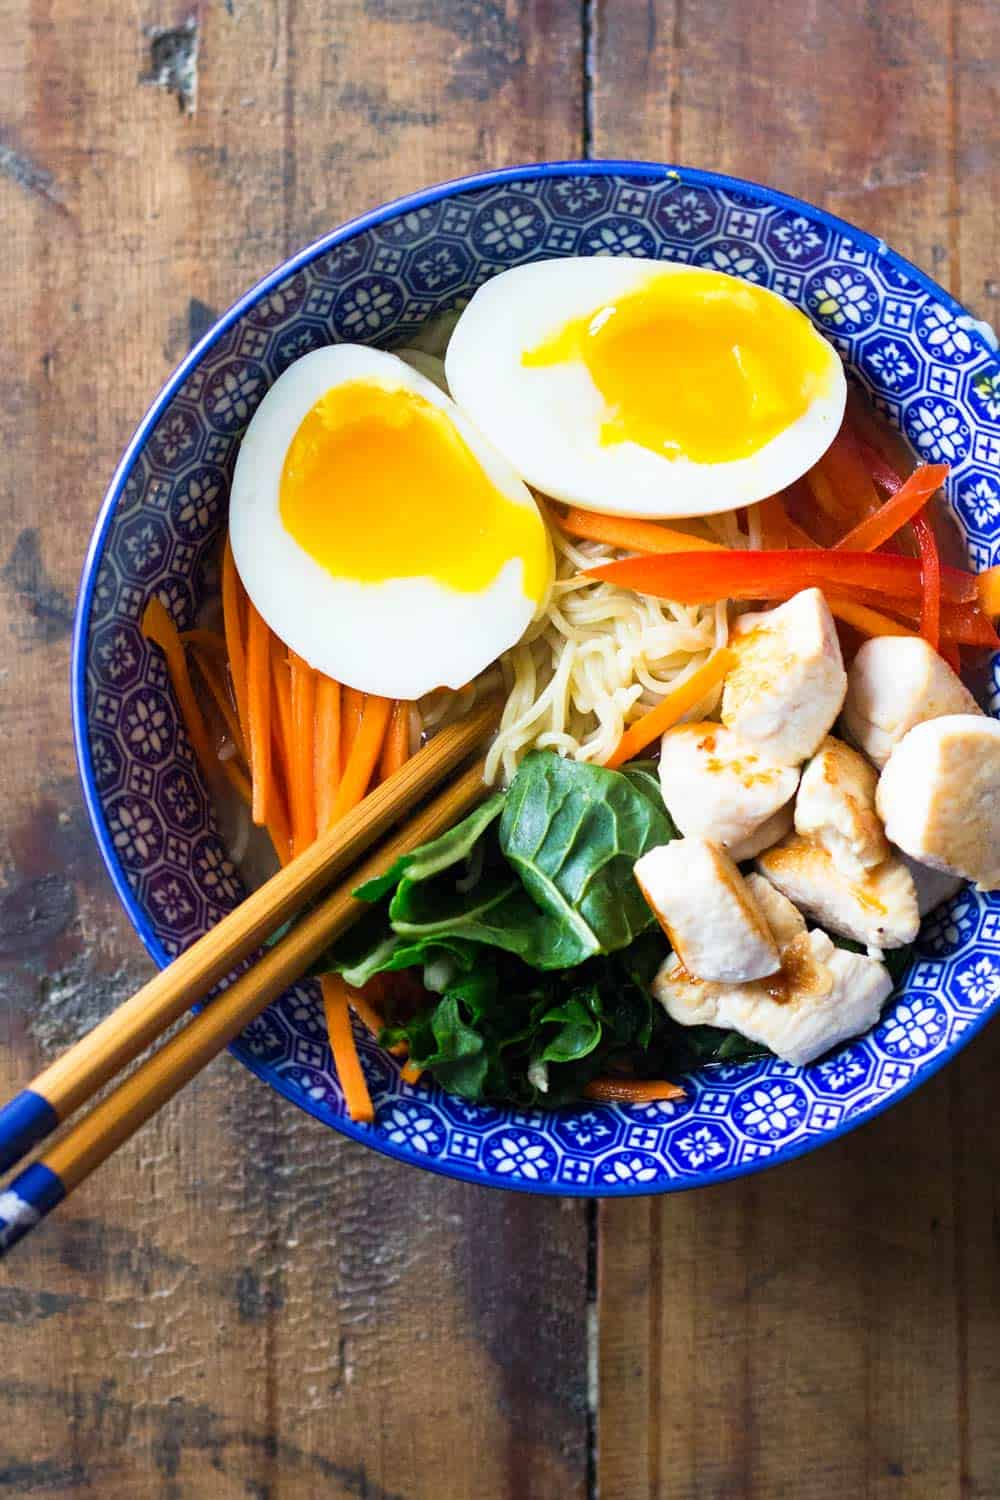 Ramen chicken noodle soup with boiled egg cut in half, served in a blue bowl with chopsticks.